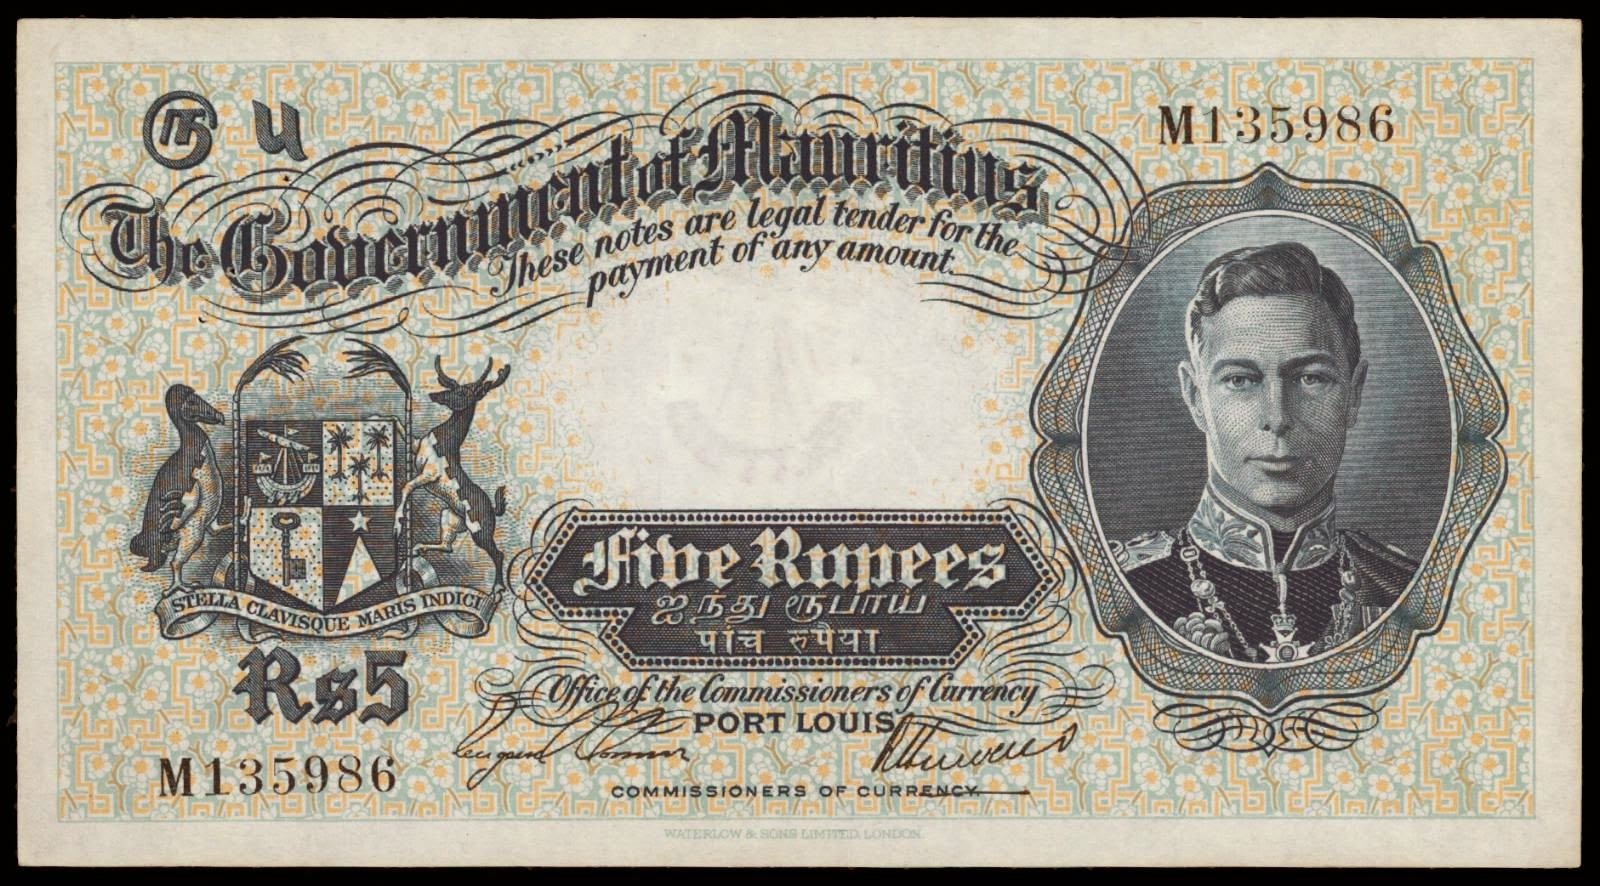 Mauritius Banknotes 5 Rupees note 1937 King George VI